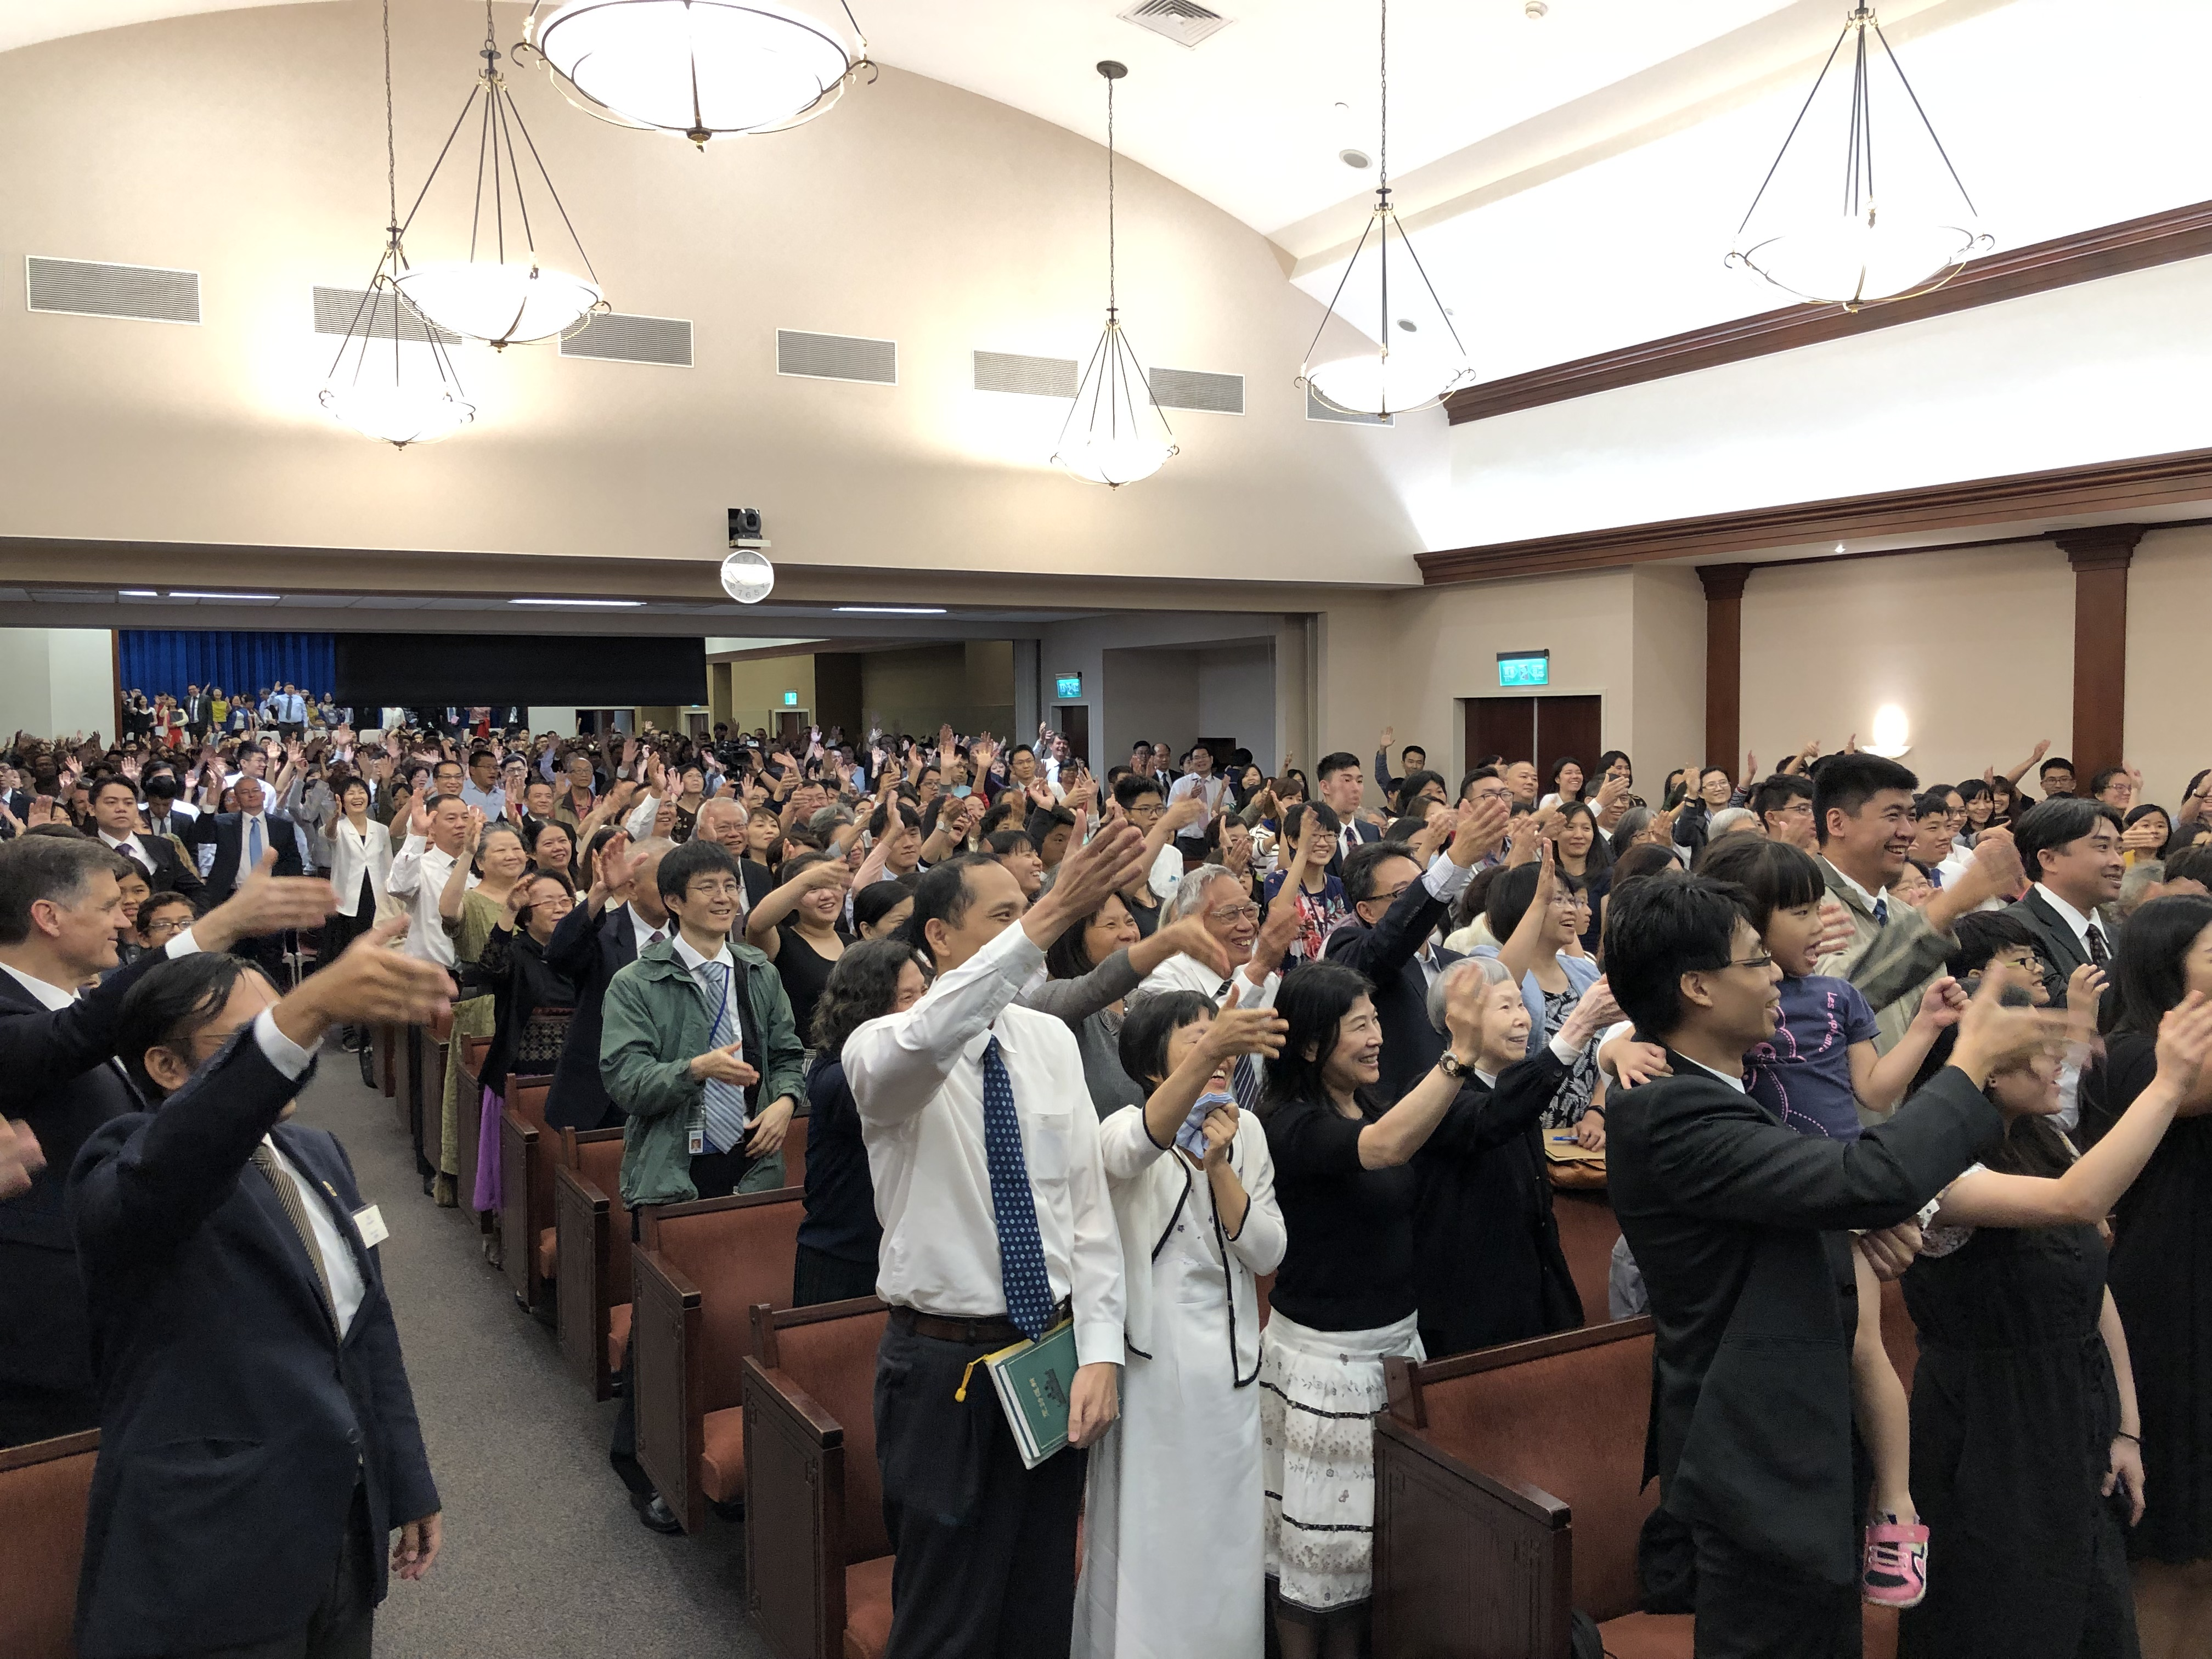 During a member devotional in Taipei, Taiwan, members hold up their hands to do an air handshake with President M. Russell Ballard who was speaking on the stand in May 2019.